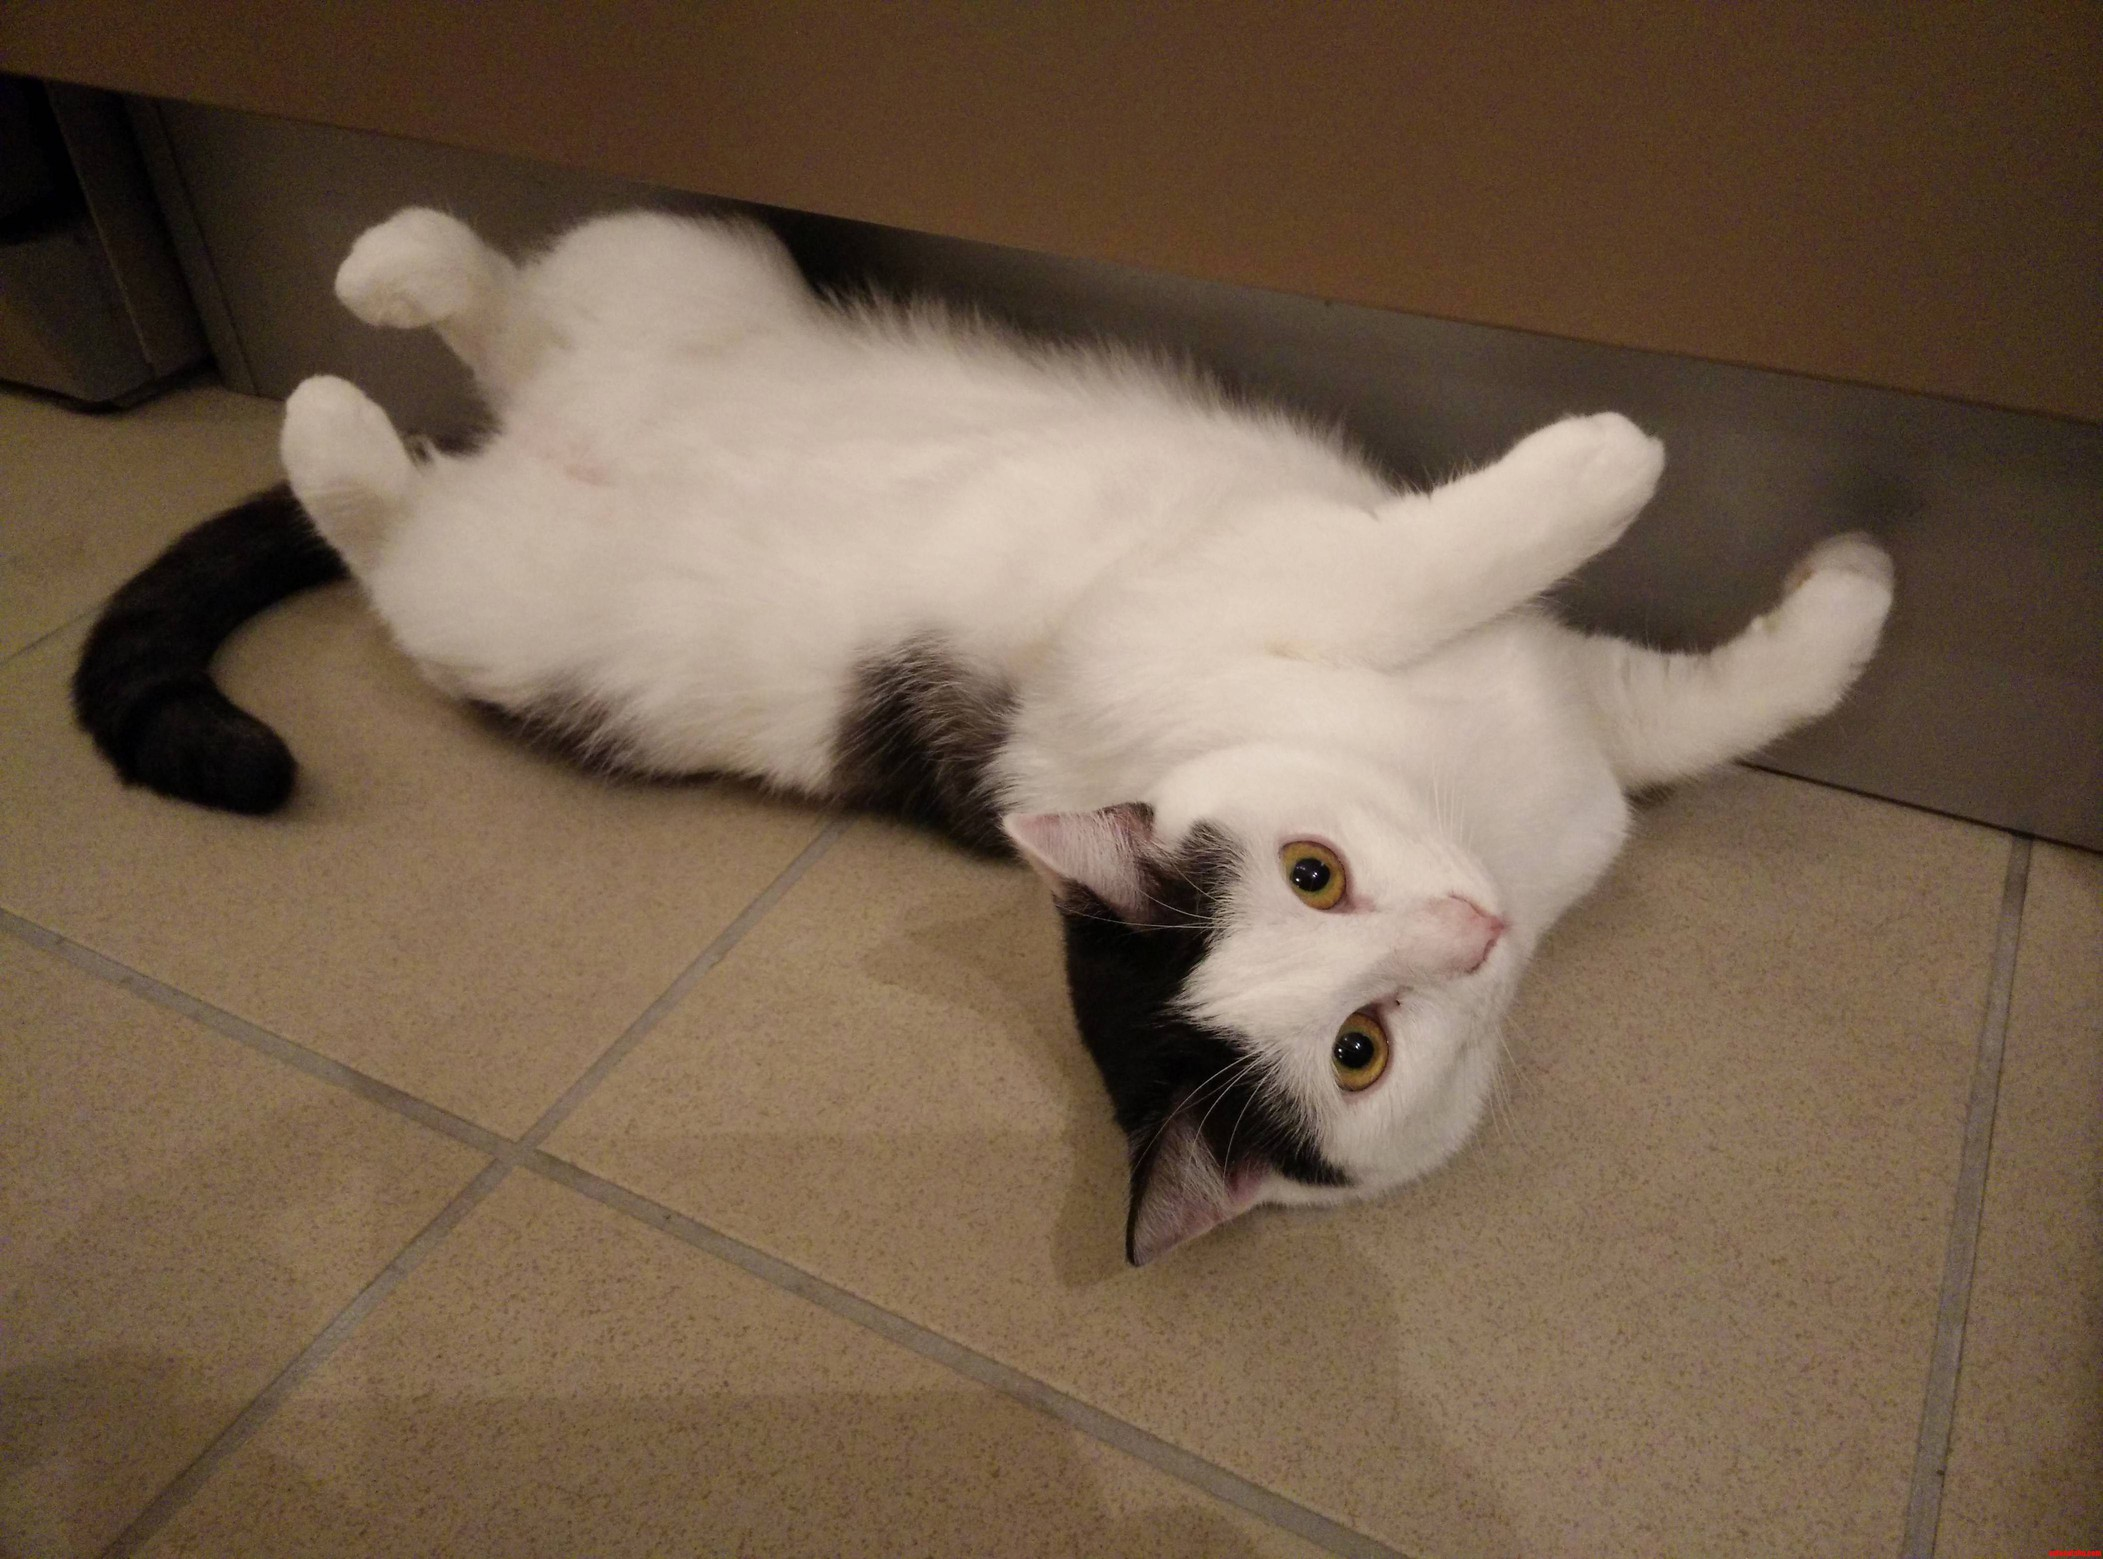 Sometimes my cat likes laying against the wall and watch you